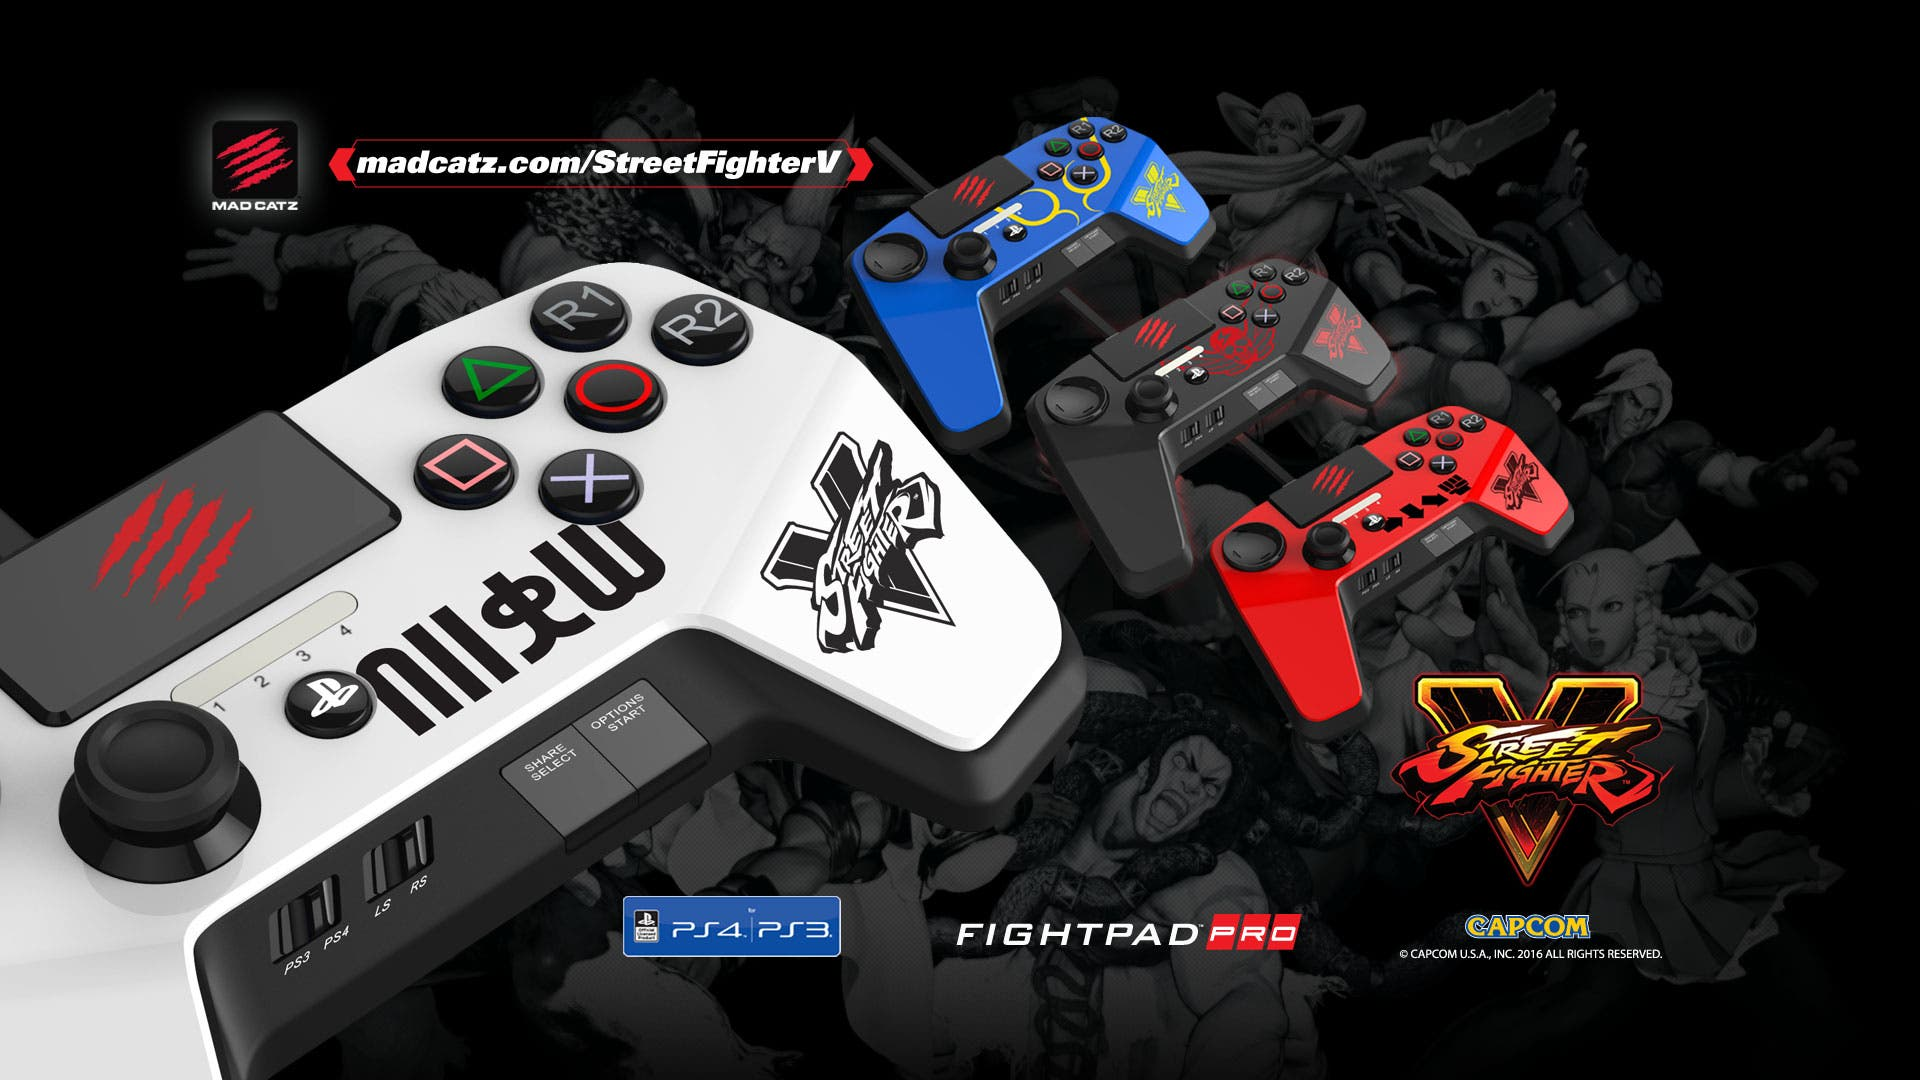 Street Fighter control 4